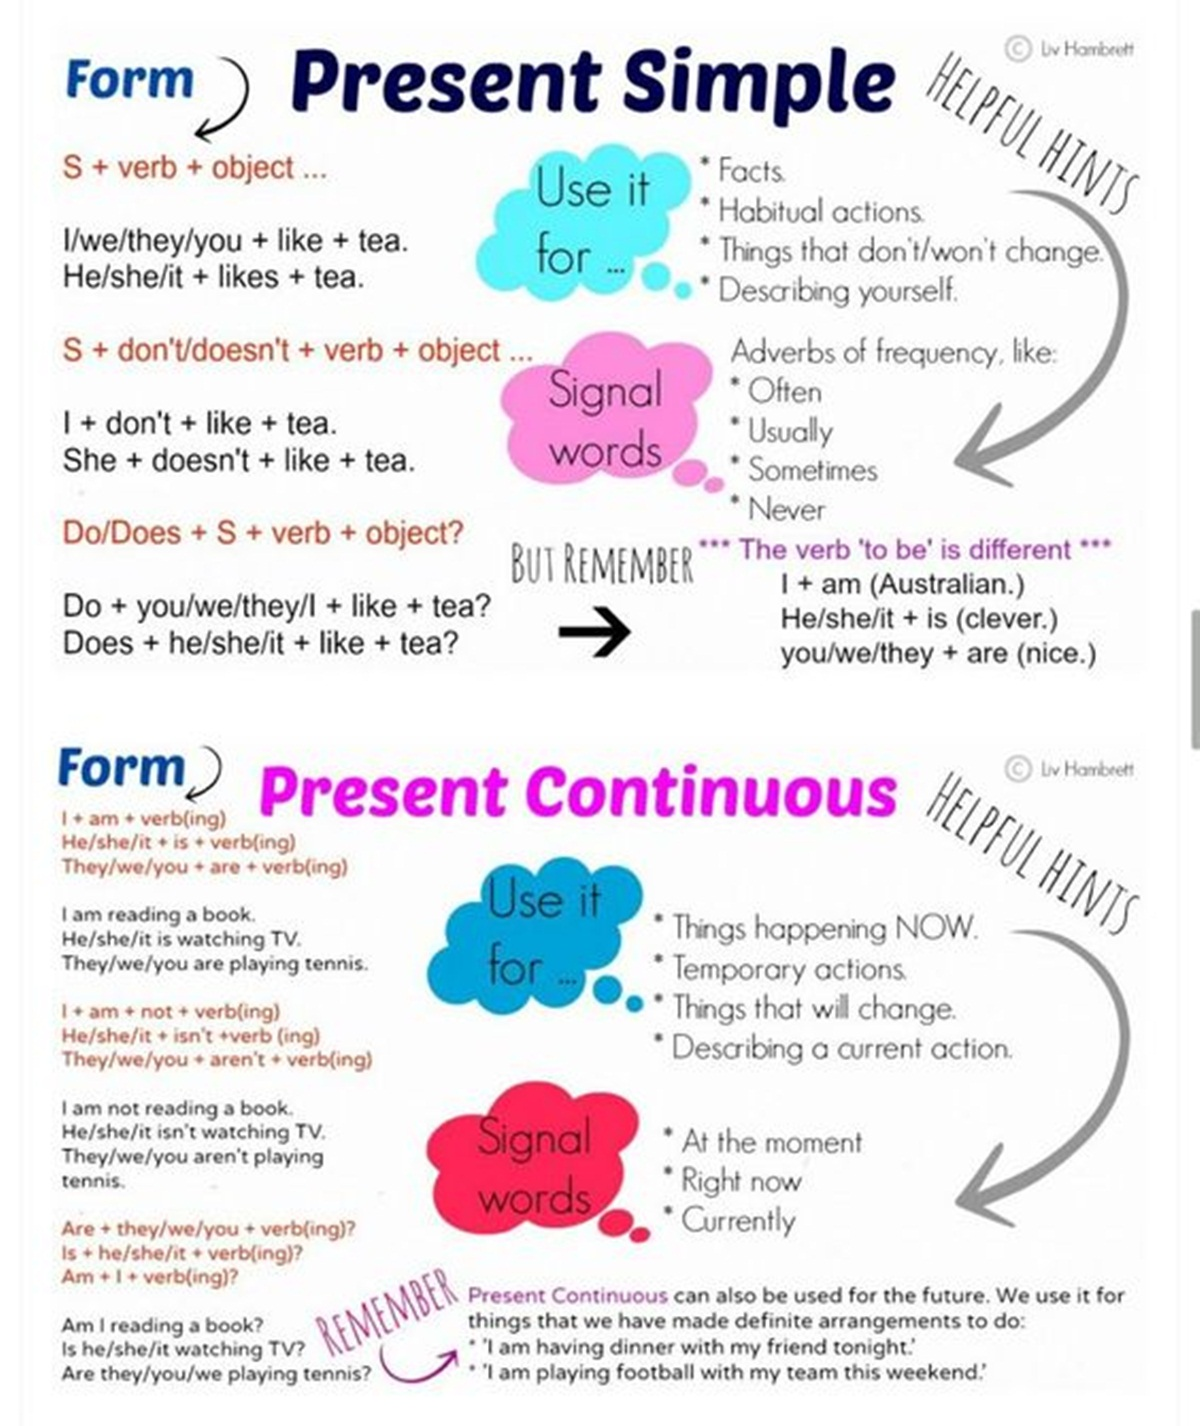 The Present Simple & Present Continuous Tense in English 3